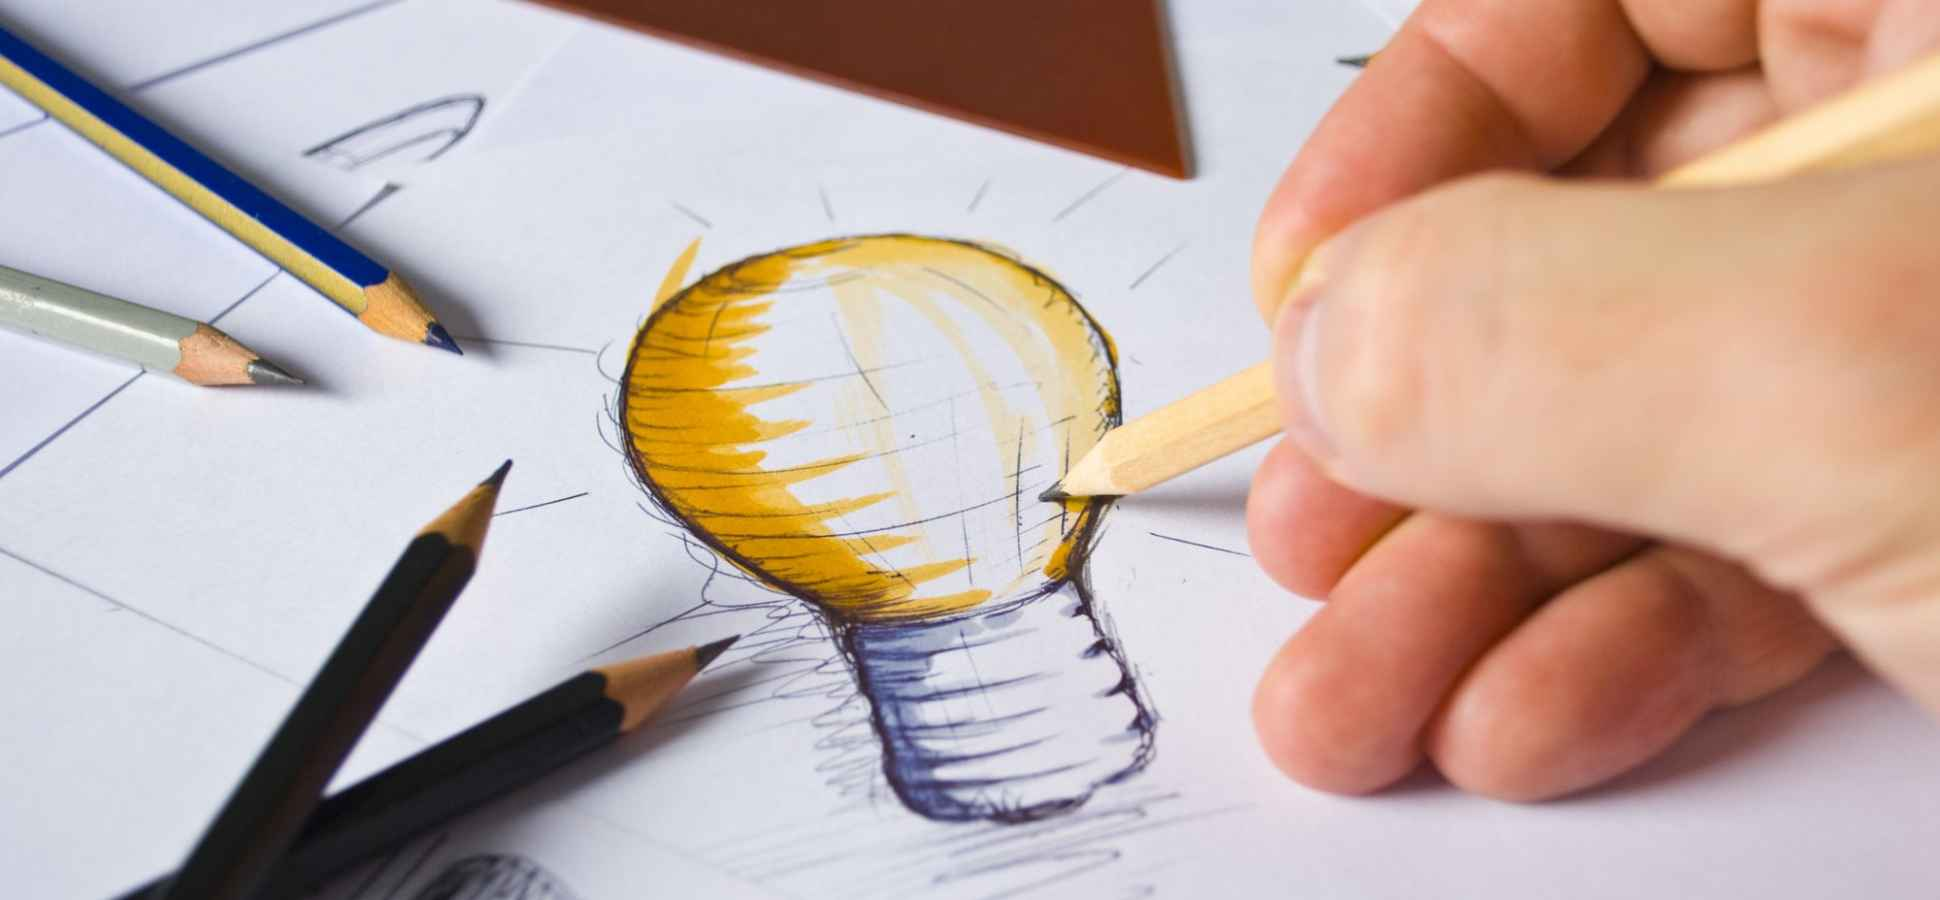 Doodling Isn't Just Something You Do When You're Bored--Science Says It Helps You Brainstorm